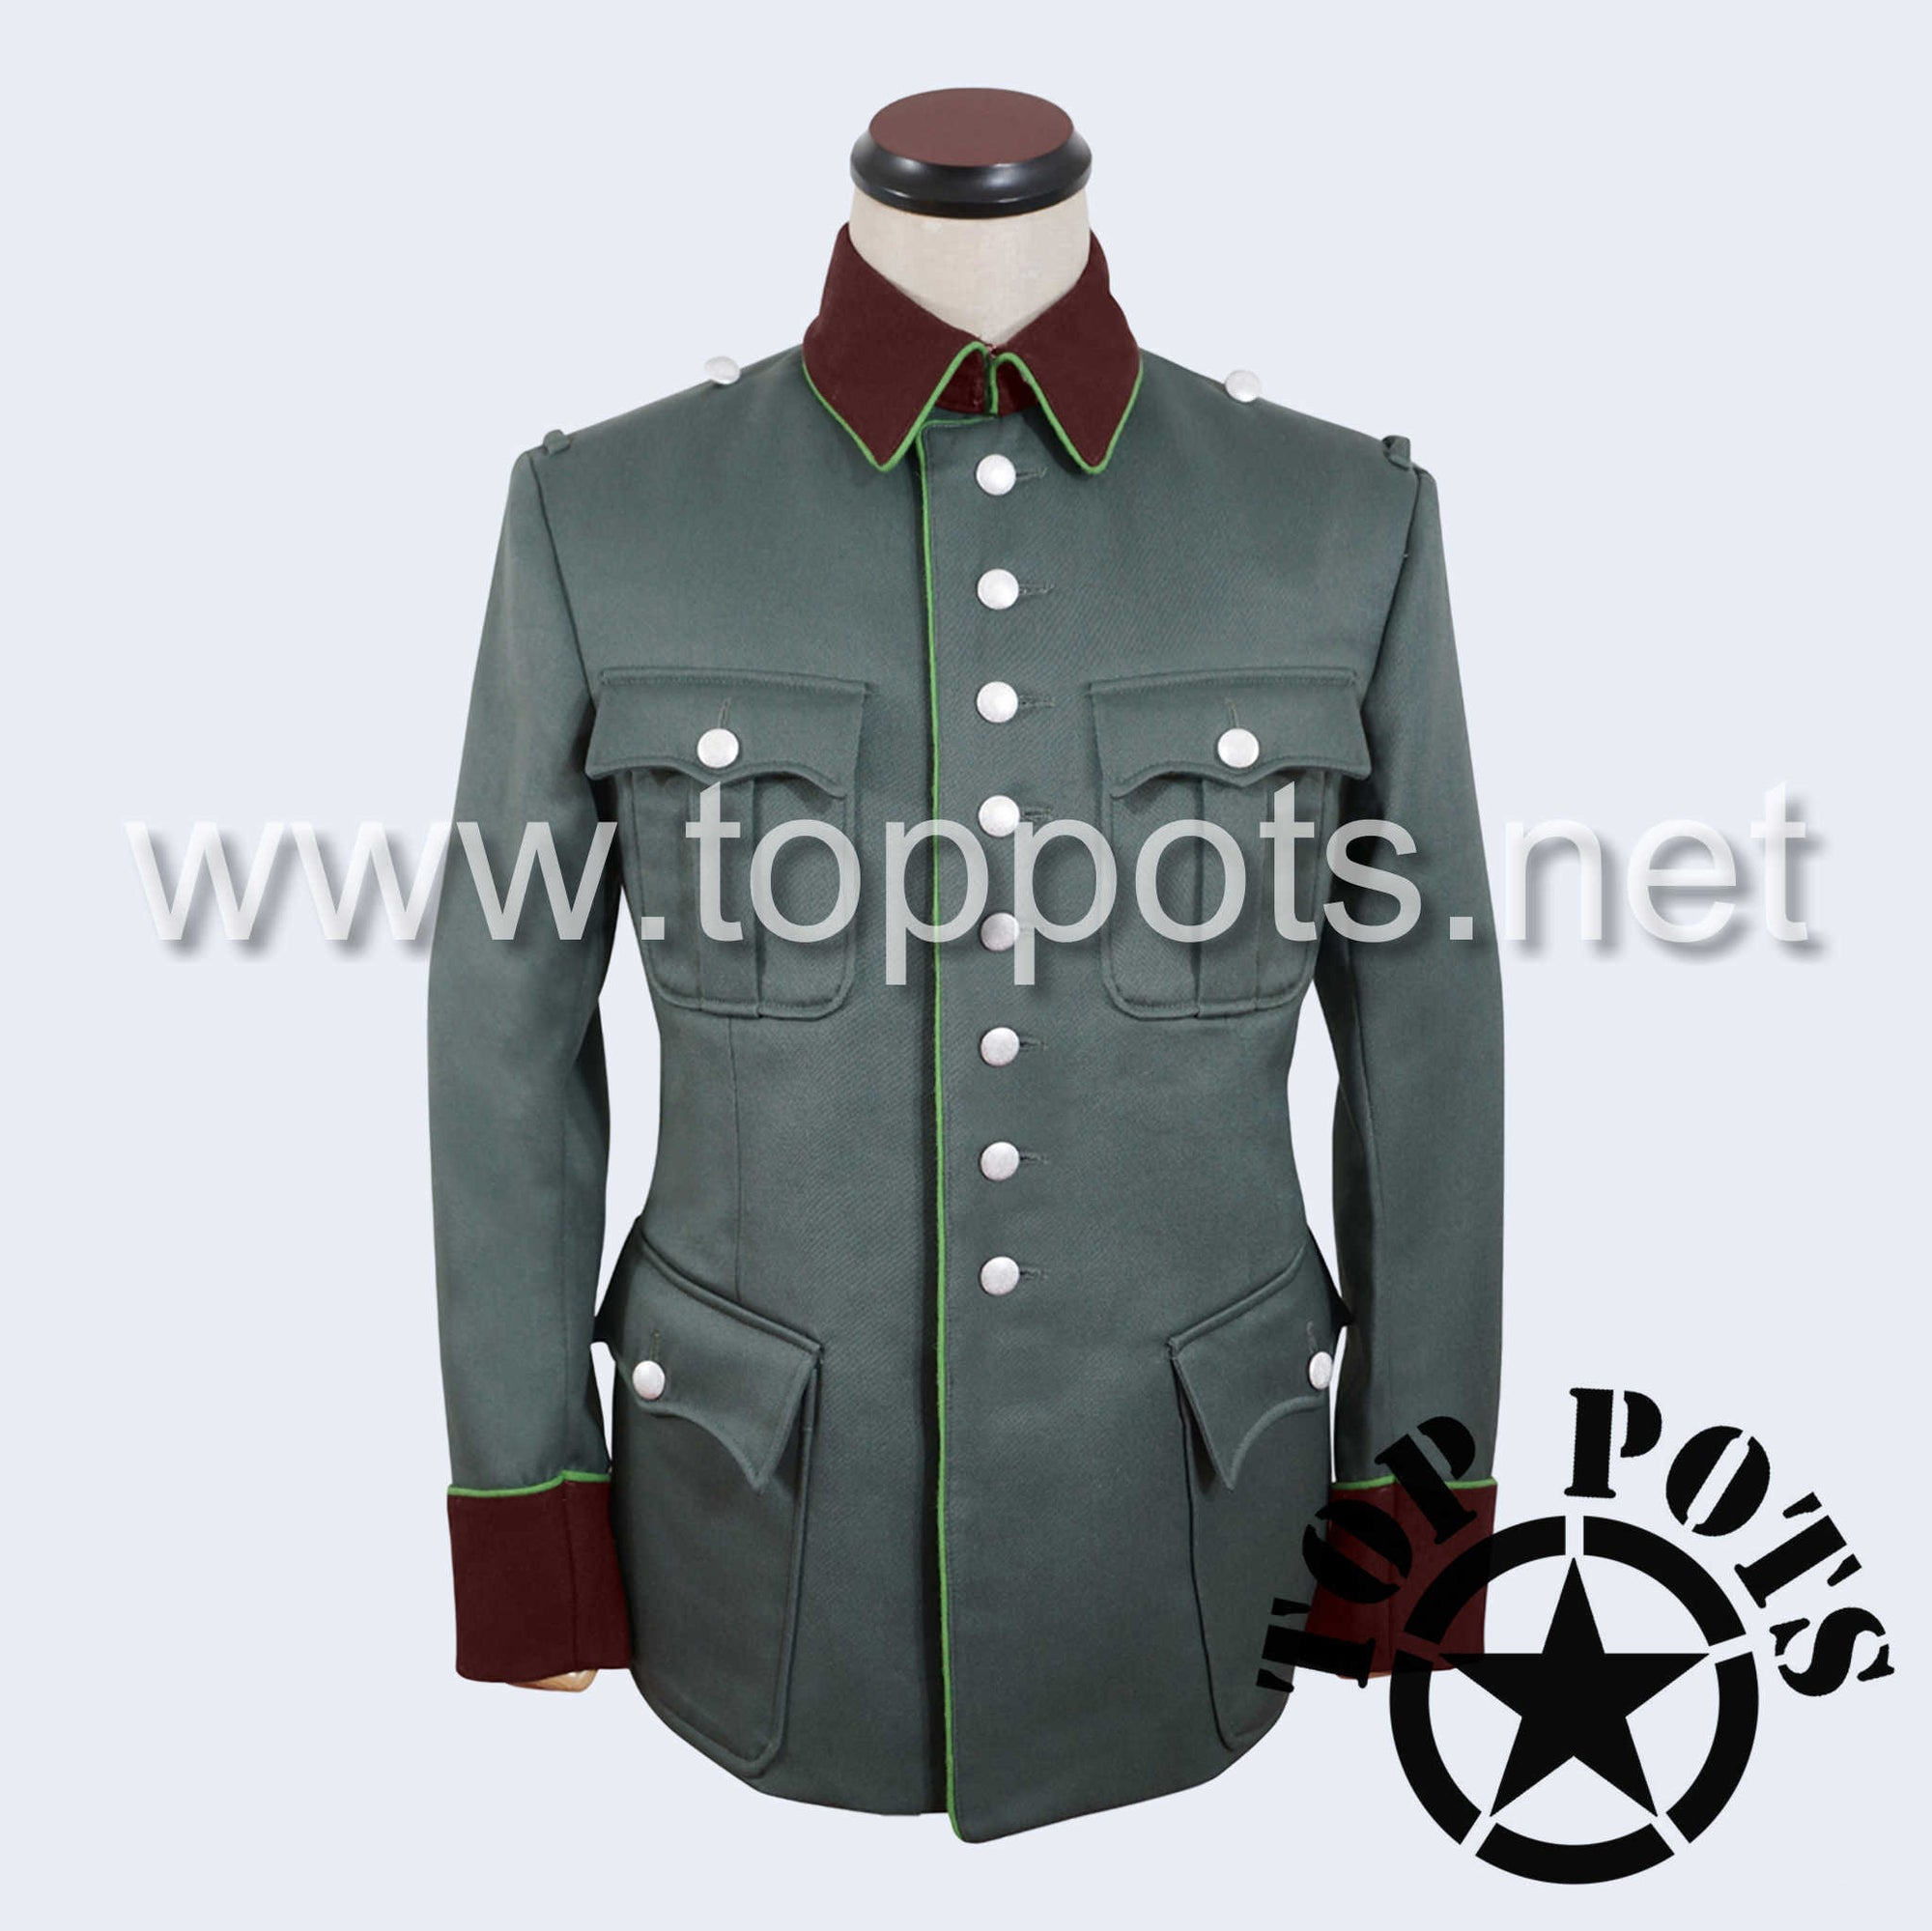 WWII German Army Heer Wehrmacht Officer Uniform Jacket Field Grey Gabardine - Ordnungspolizei Police Tunic (8 Buttons)